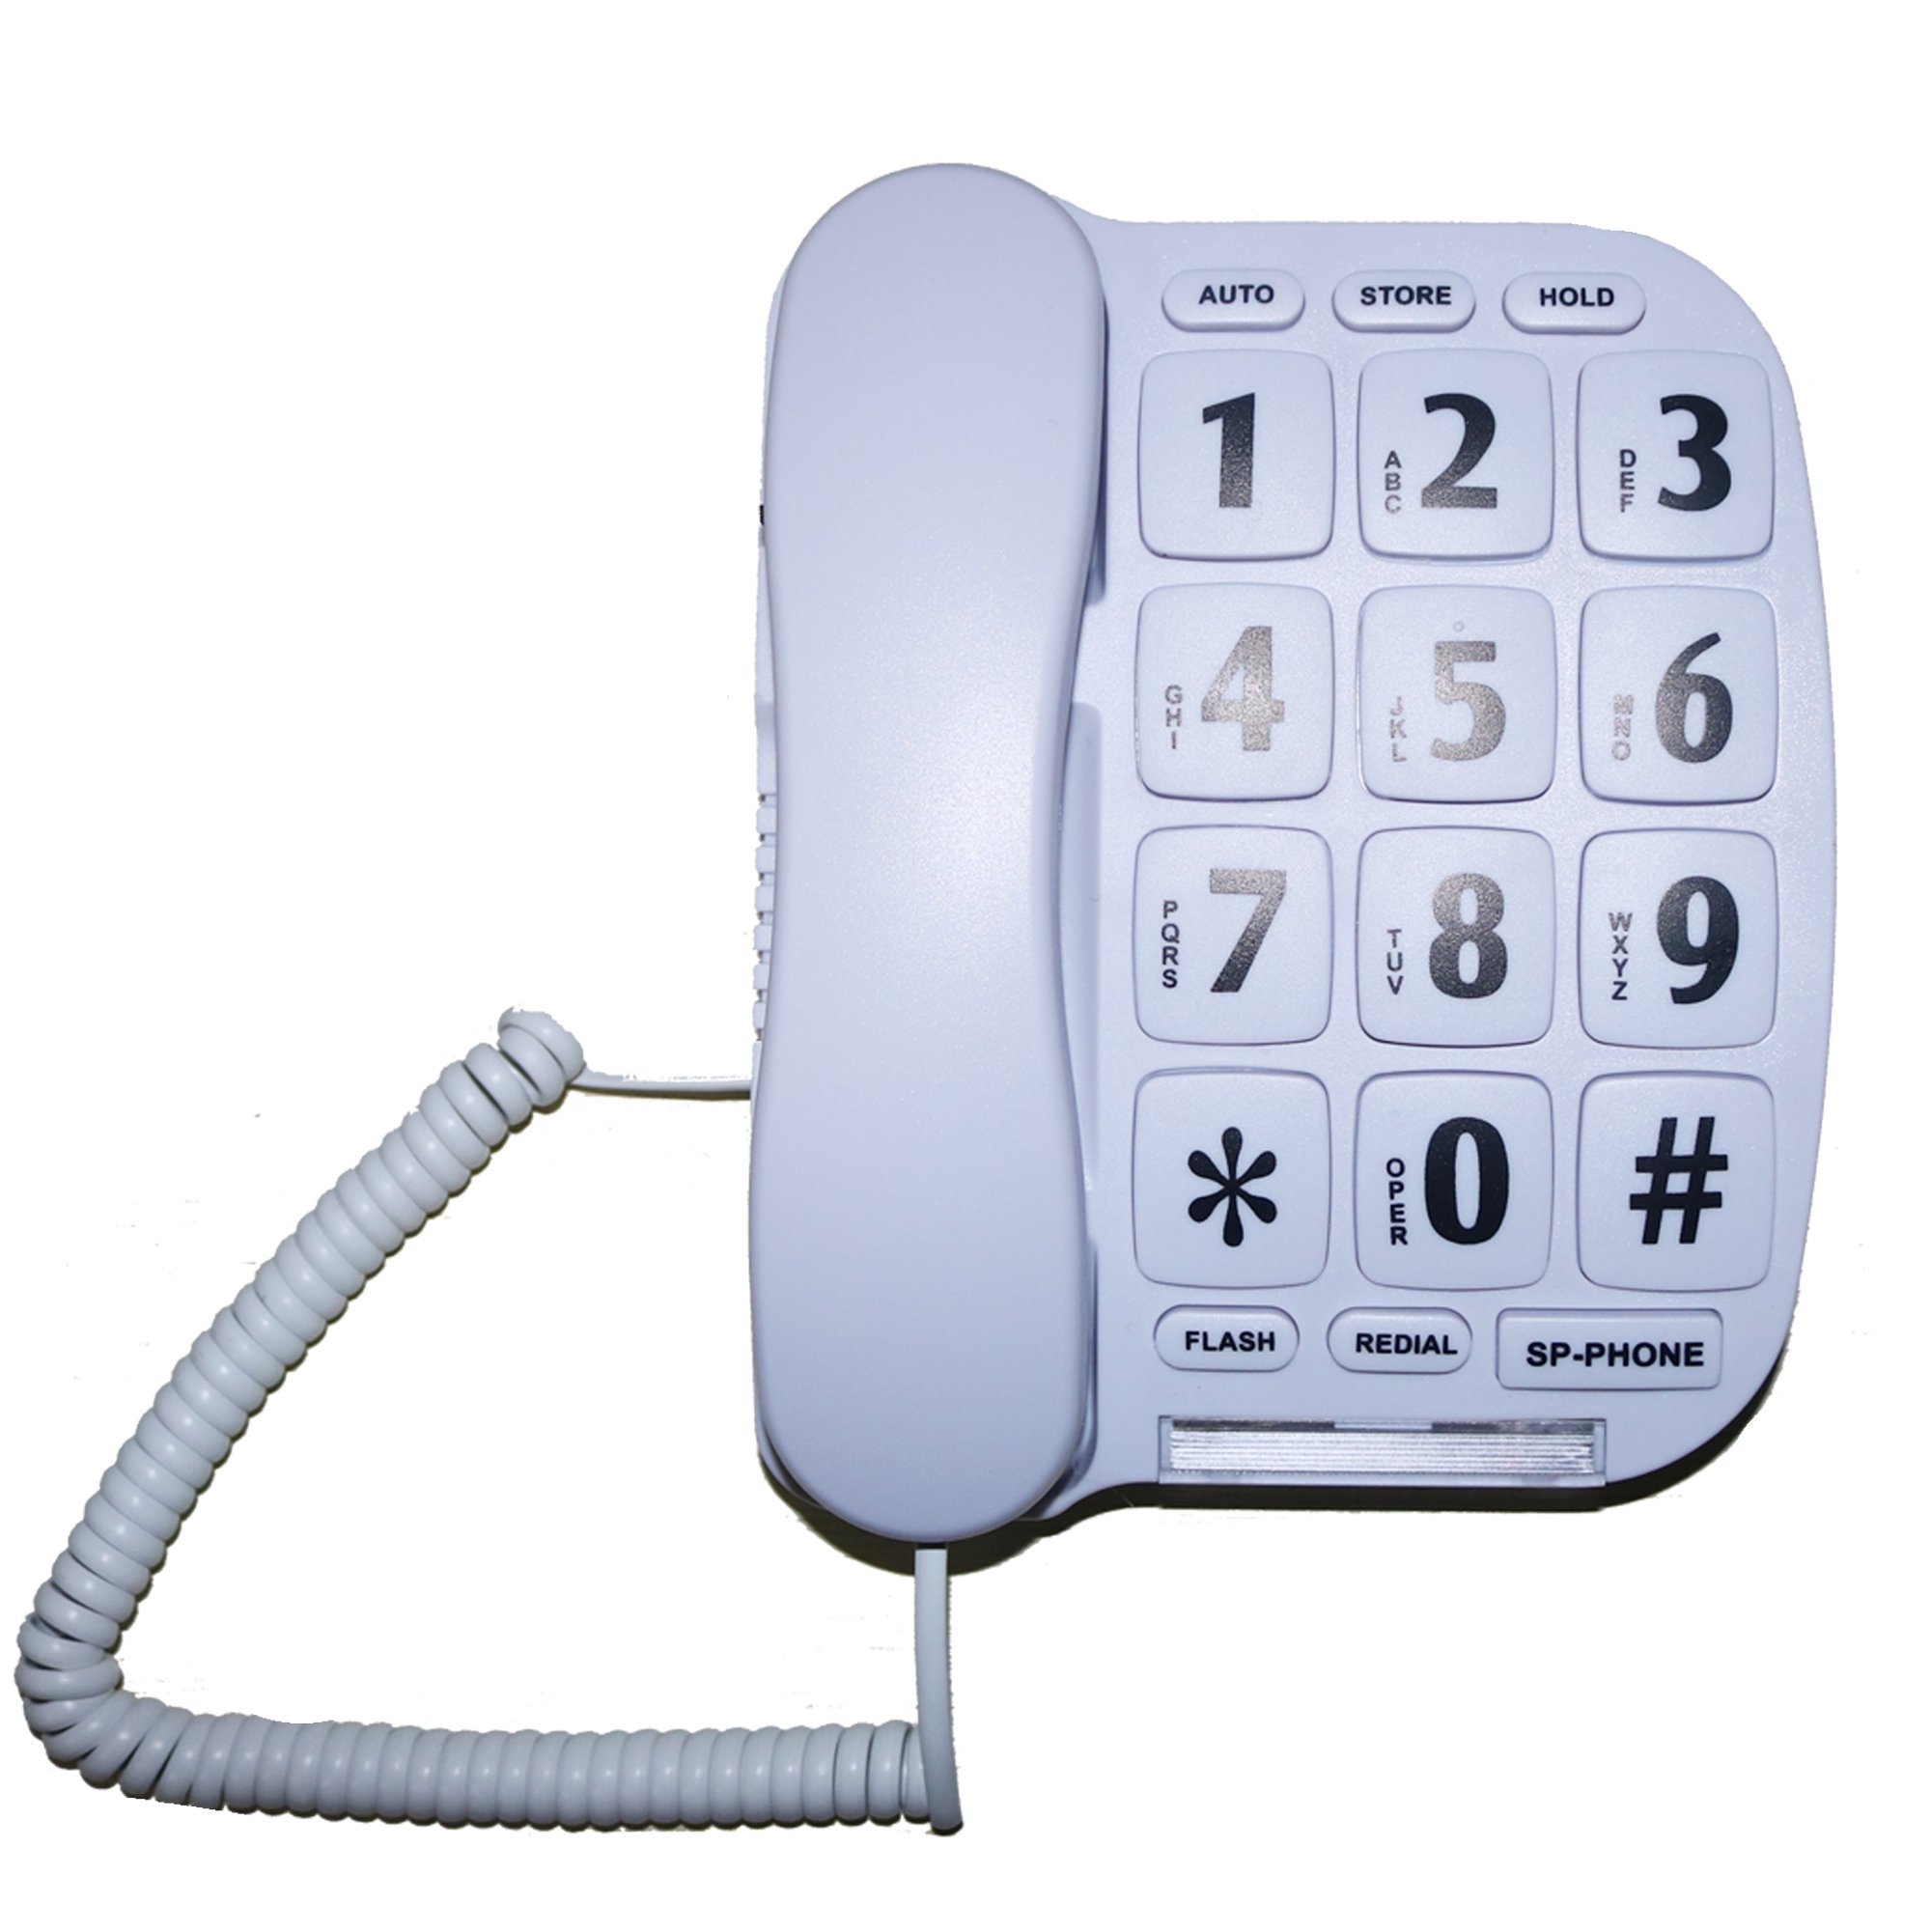 MegFong MF-11W Extra Large Button Phone for Elderly Senior Amplified Corded Phone with Loud Handsfree Speakerphone Perfect for Hearing Impaired